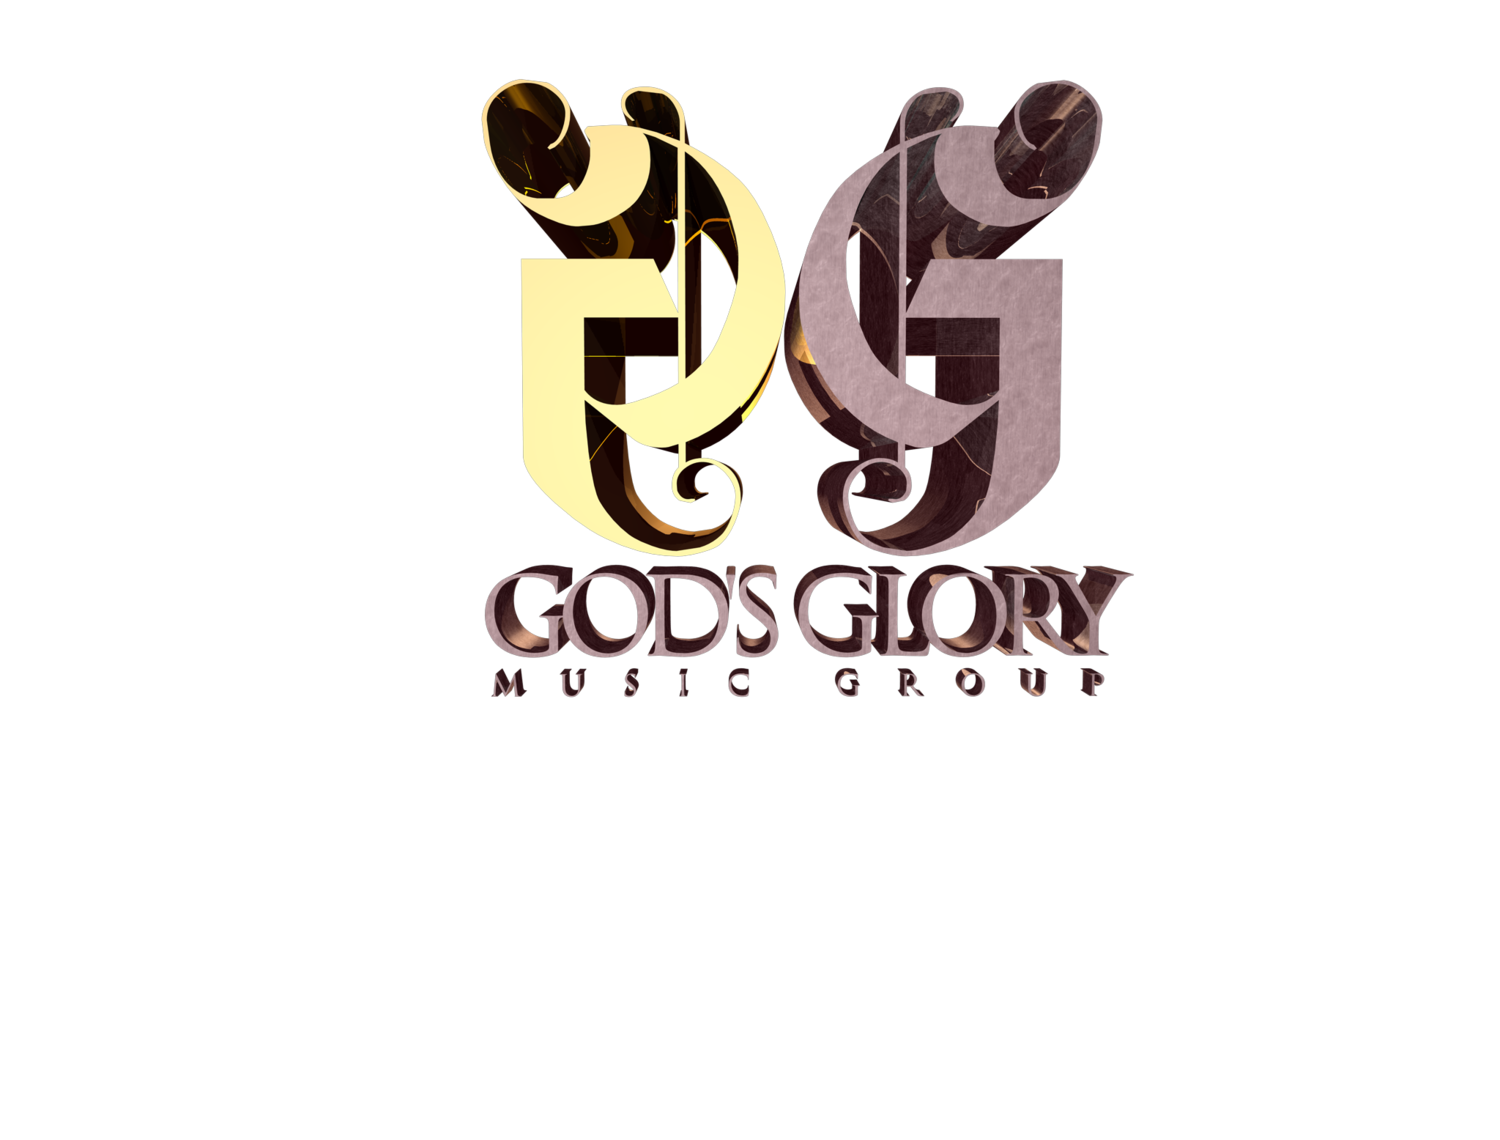 God's Glory Music Group